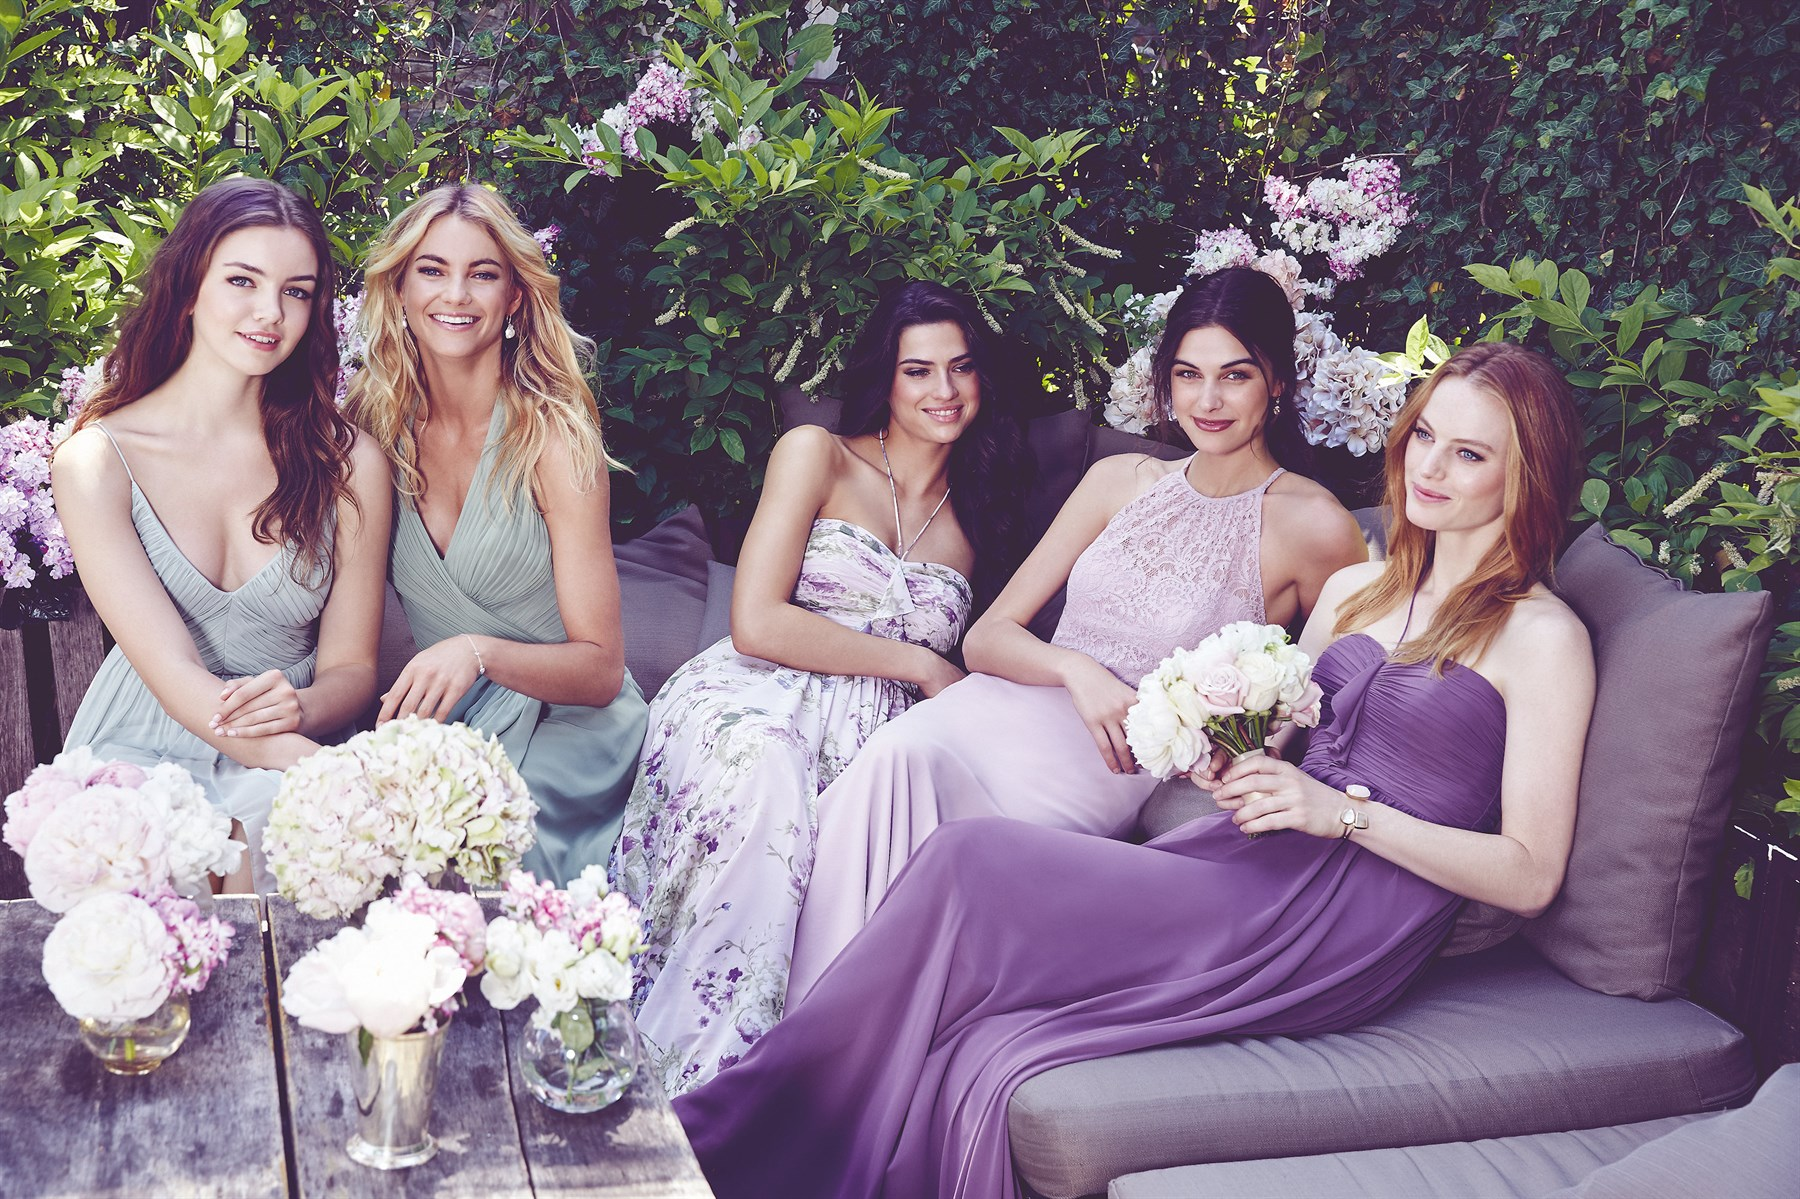 Designer-Dessy-Bridesmaid-Dresses-At-7th-Heaven-Bridal-Congleton-Cheshire21